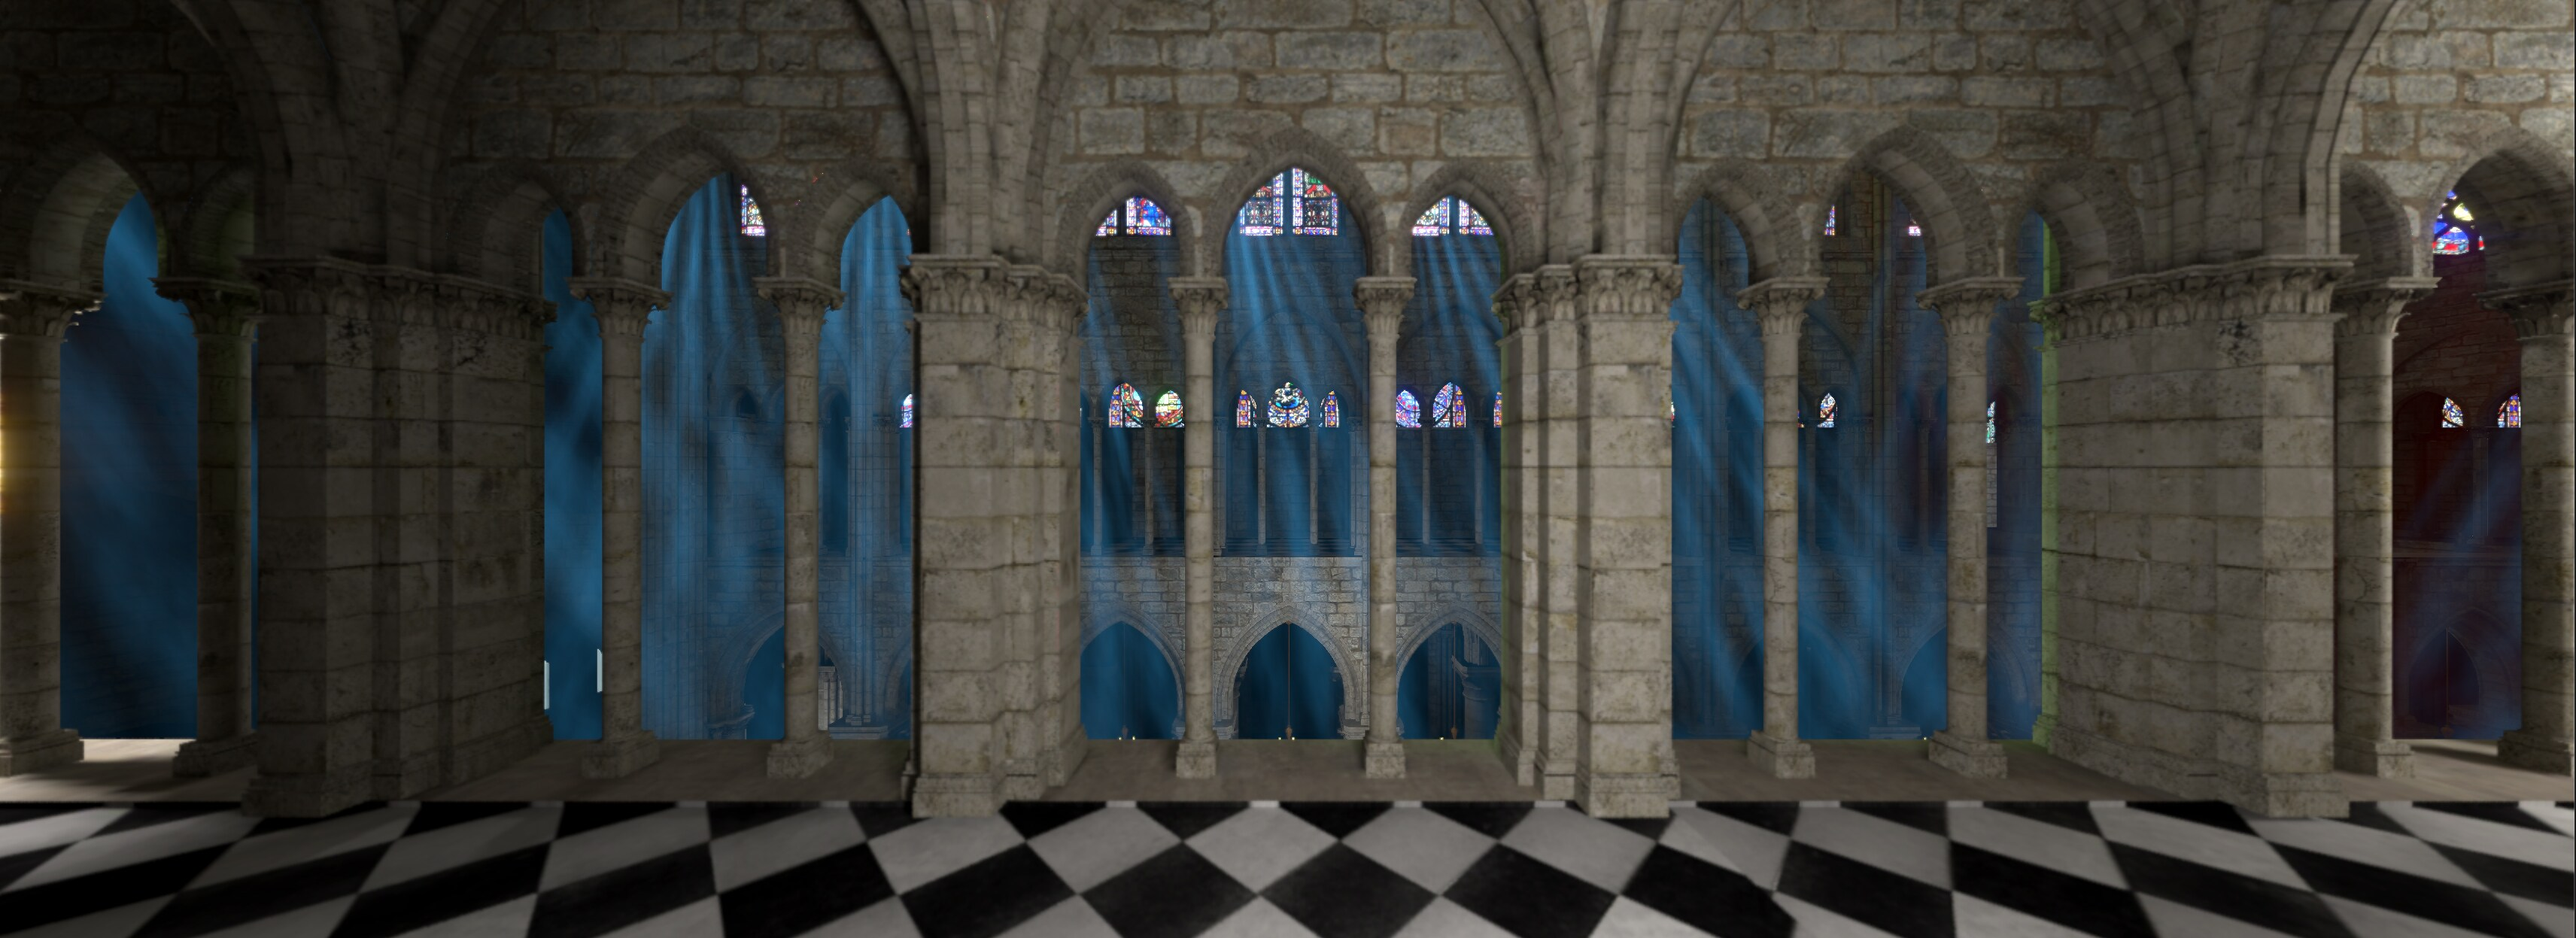 Side view of the virtual Notre Dame experience with playful blue lighting